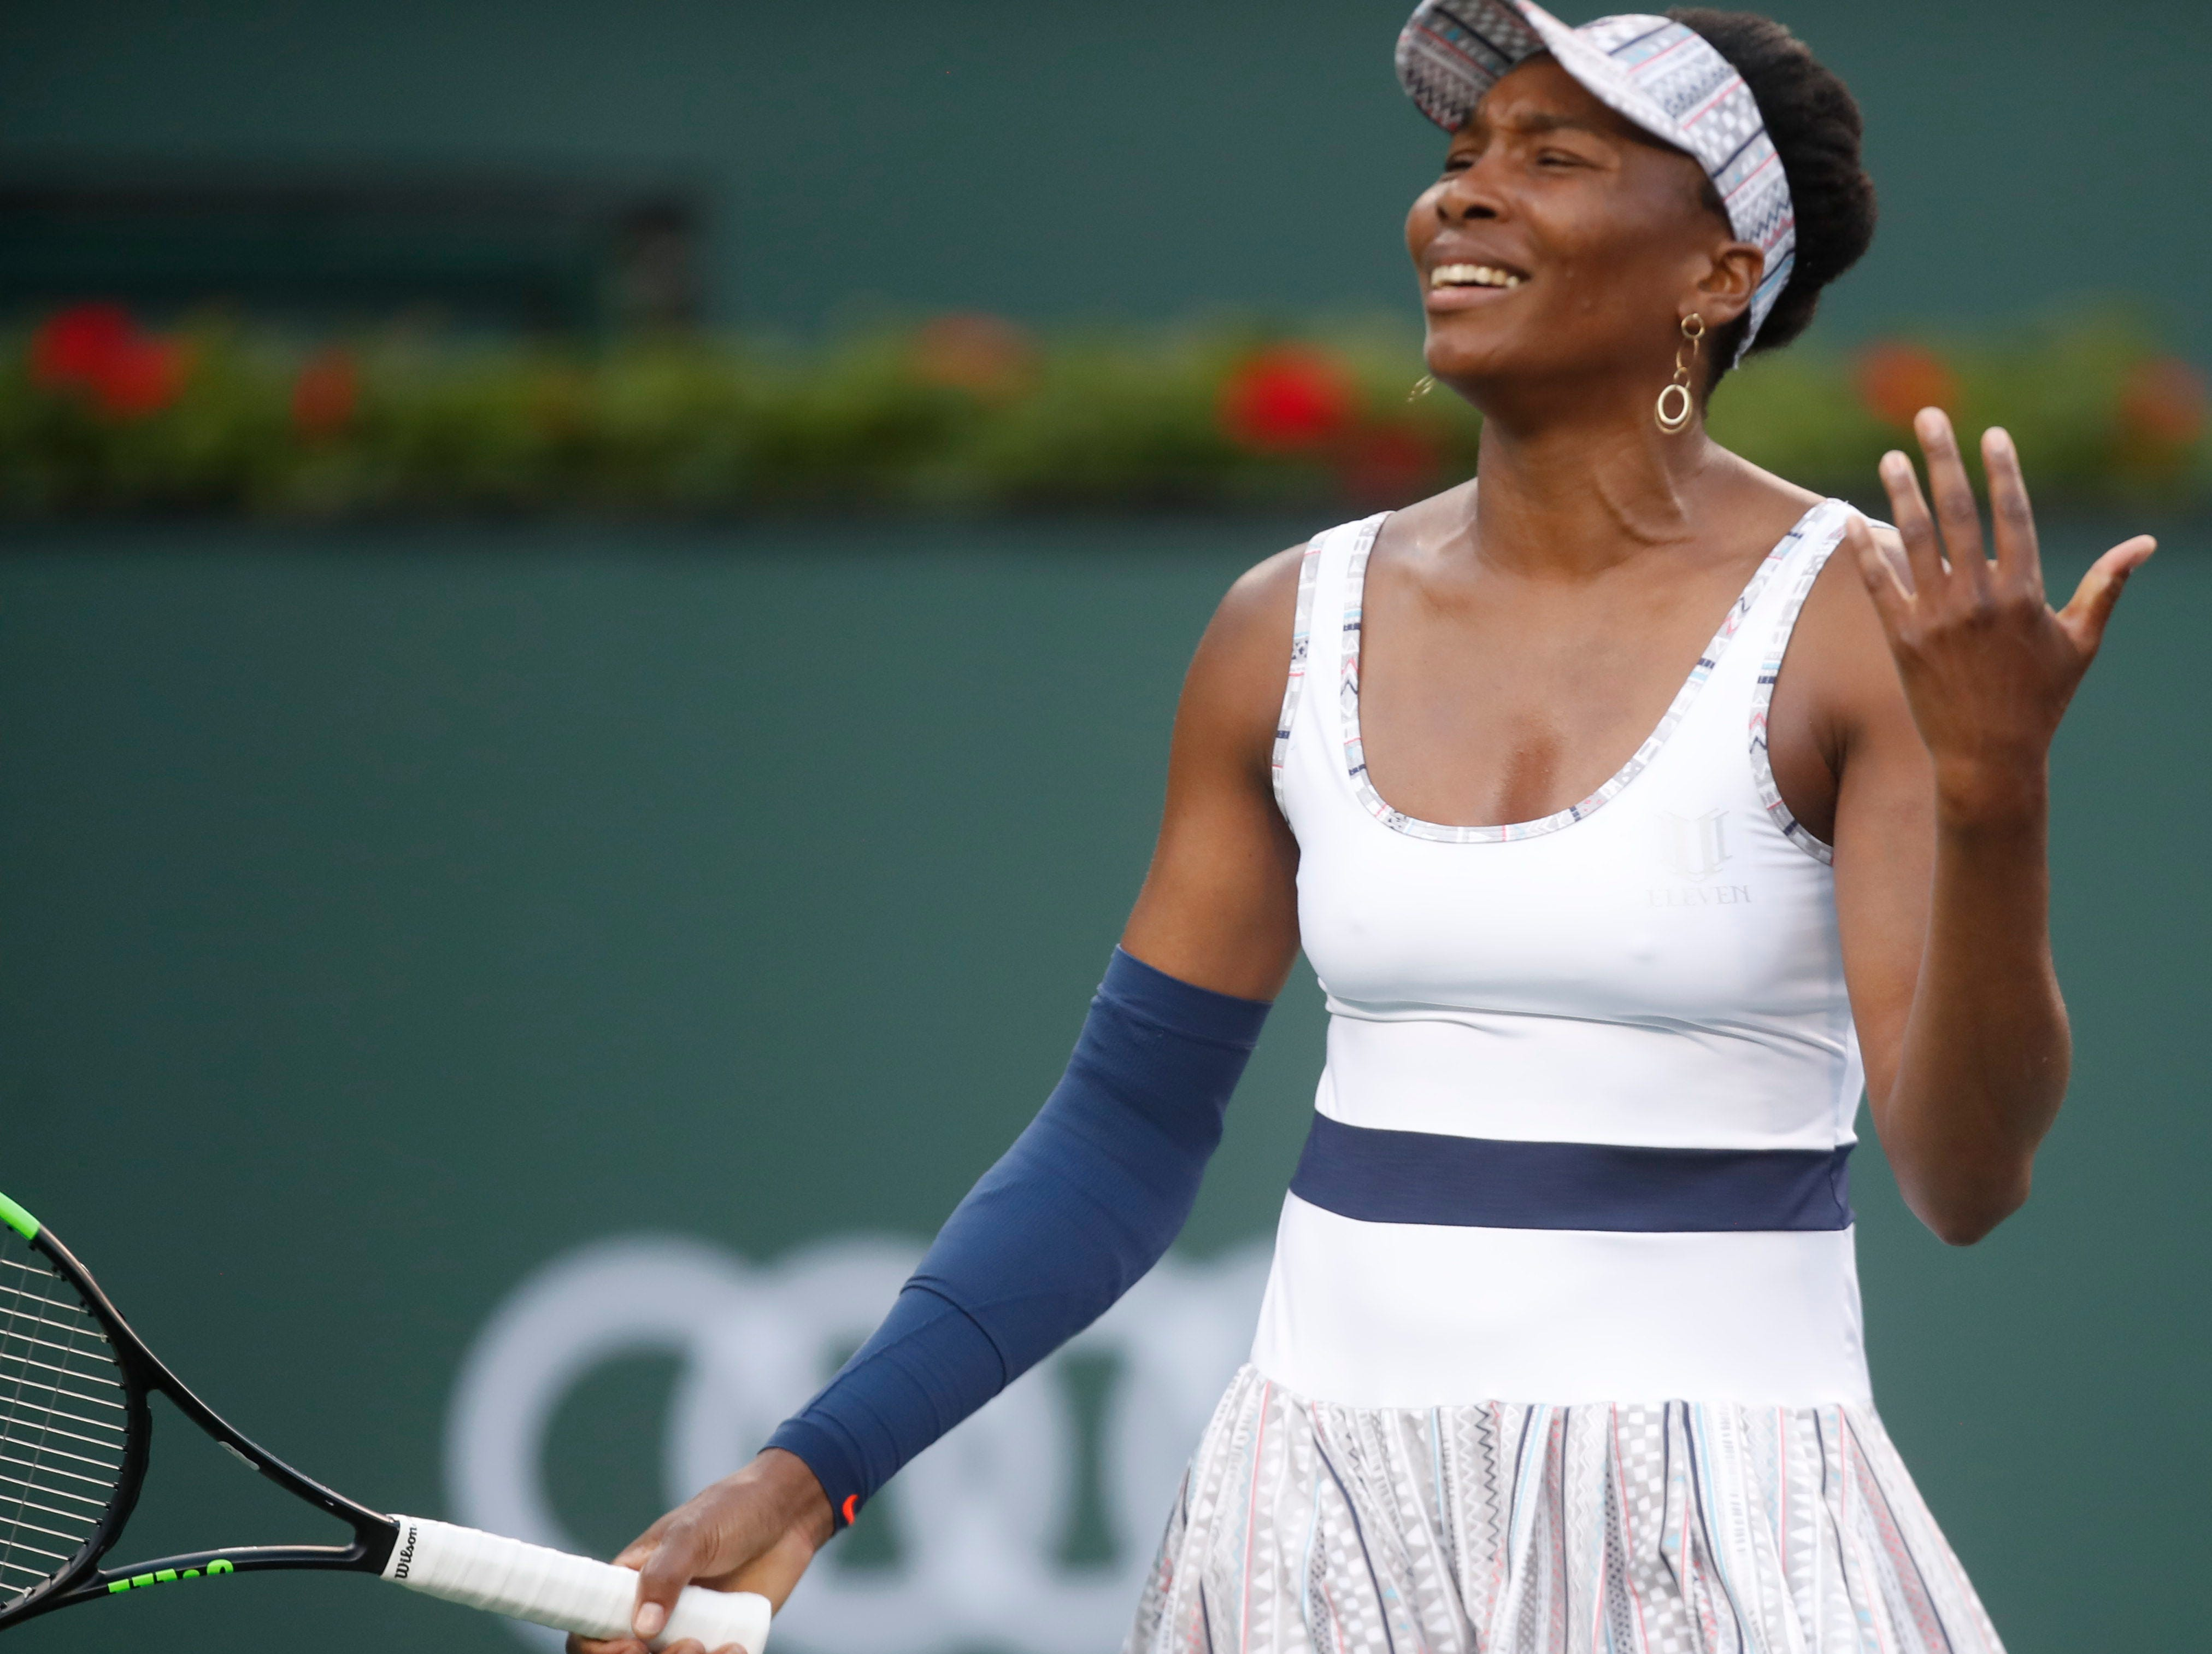 Venus Williams reacts to a lost point to Mona Barthel on Stadium One at the 2019 BNP Paribas Open at Indian Wells Tennis Garden on March 12, 2019. Williams won the match 6-4, 6-4.